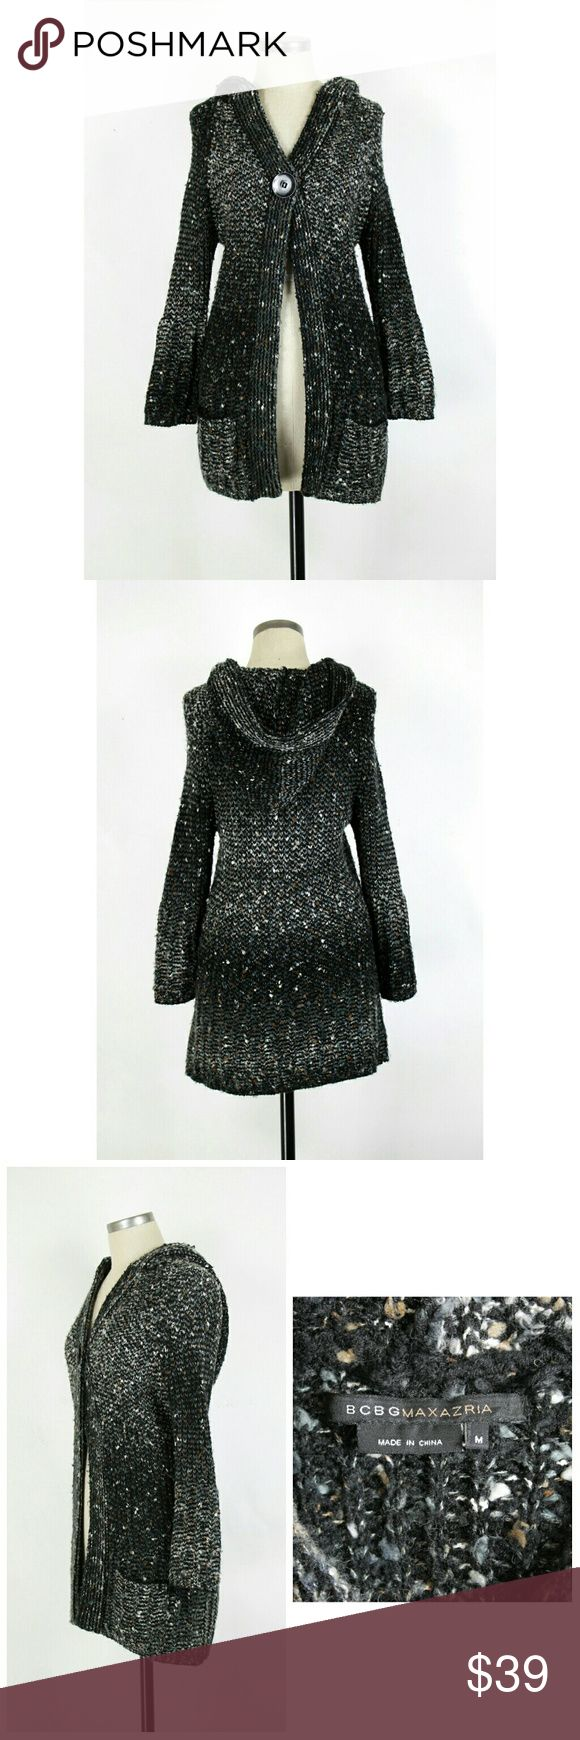 """BCBGMAXAZRIA hooded cardigan sweater coat Size Medium. BCBGMAXAZRIA hooded cardigan sweater coat. Single button front closure. Long sleeves. Front pockets.  Long length styling. Chunky knit. acrylic/polyester/alpaca/mohair/nylon blend. Gently used with no flaws. Approximate measurements Bust 33"""" Length 32"""".  Colors black, blue, brown and gray. BCBGMaxAzria Sweaters Cardigans"""